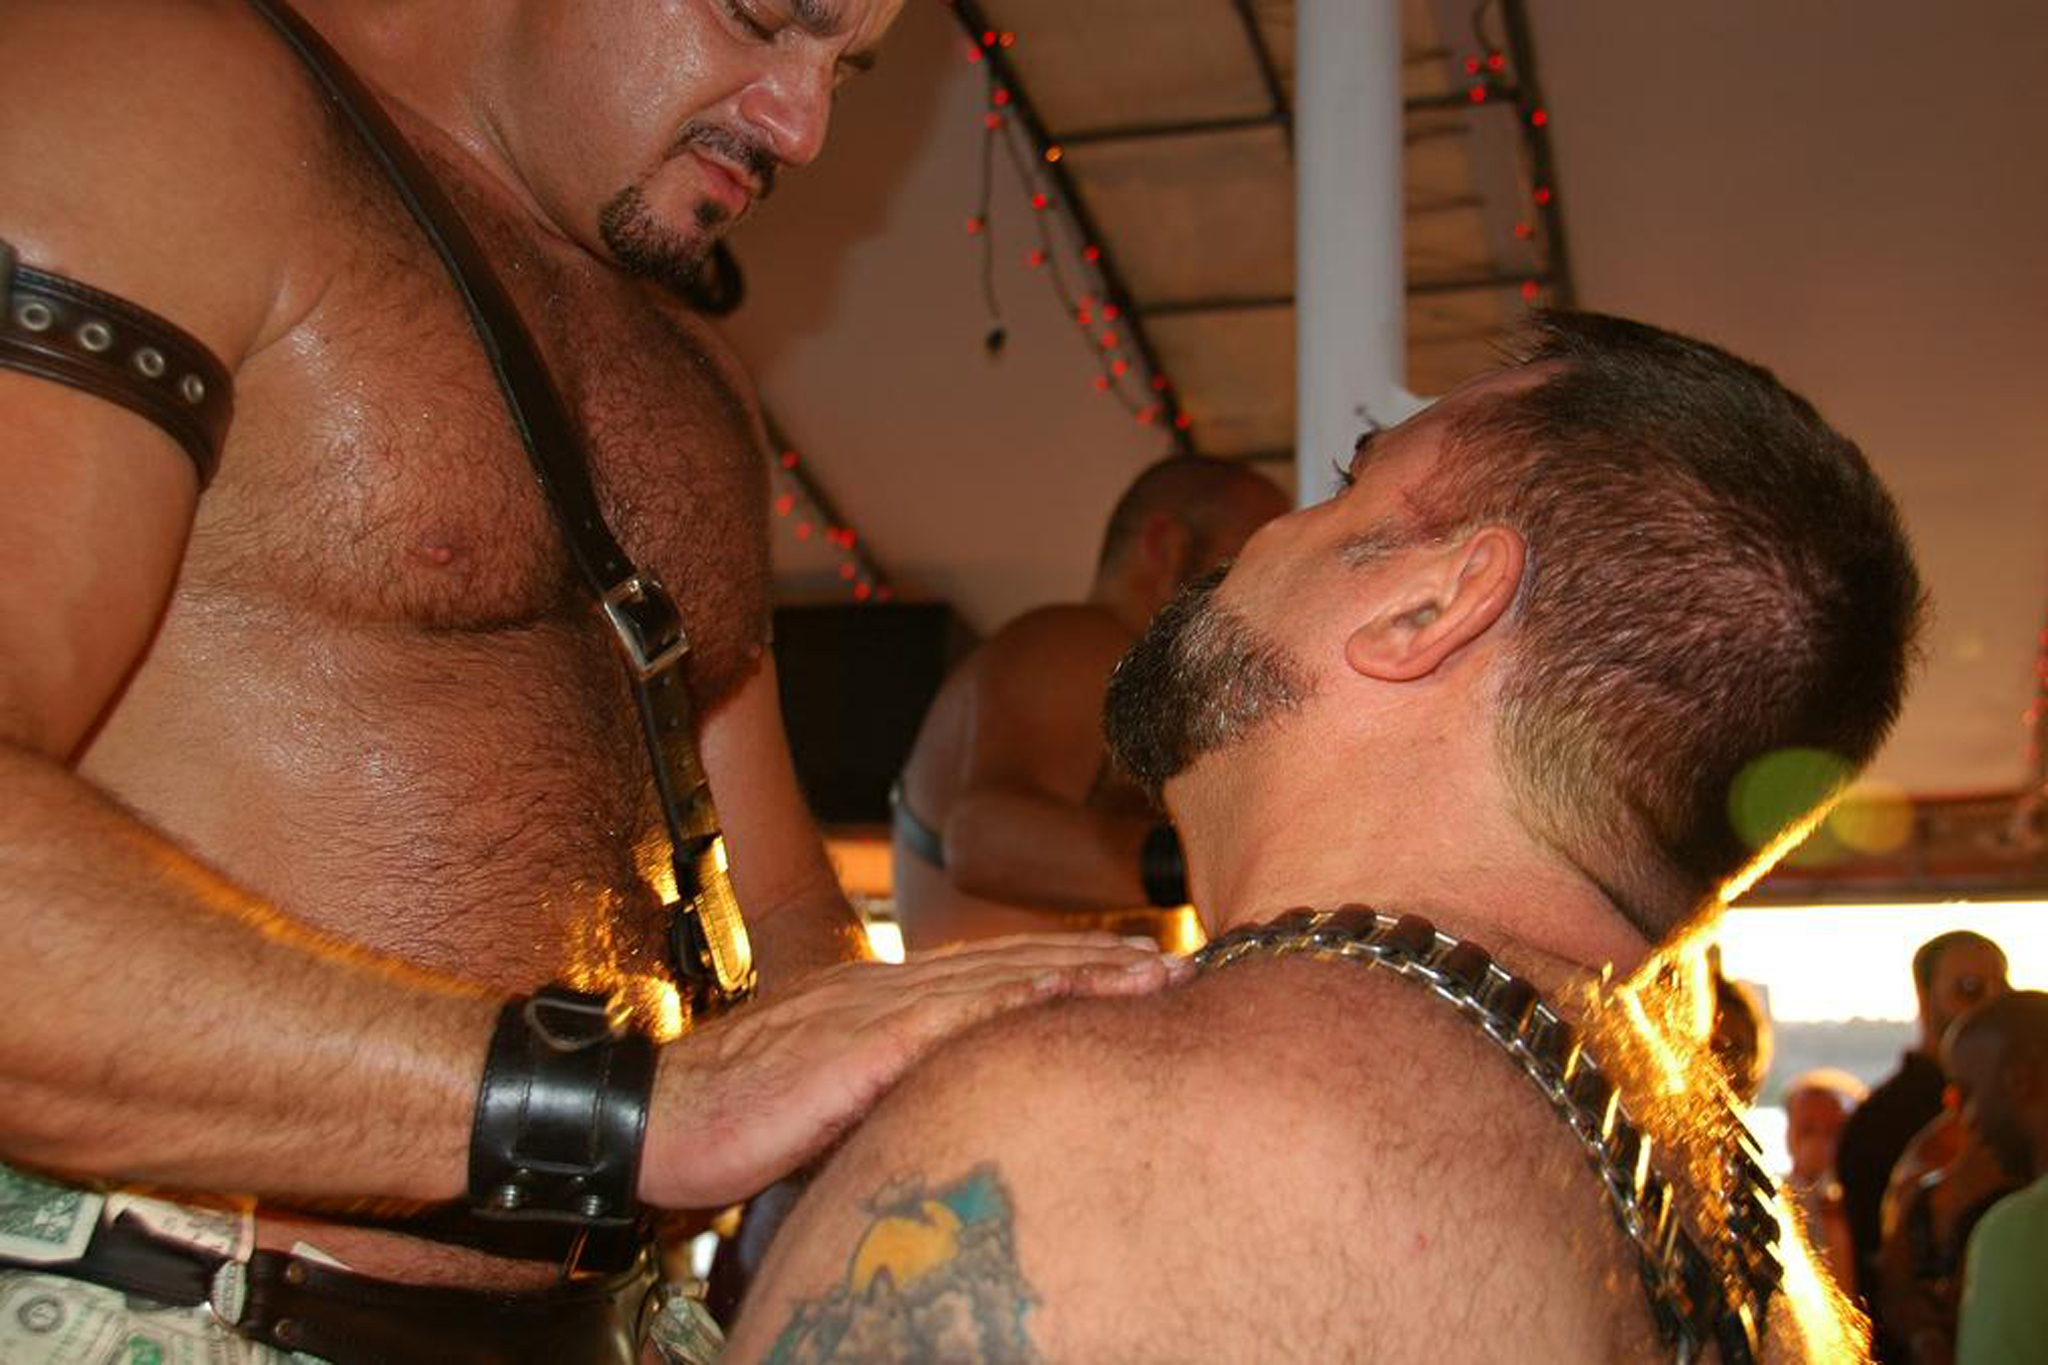 free mobile gay sex movie downloads